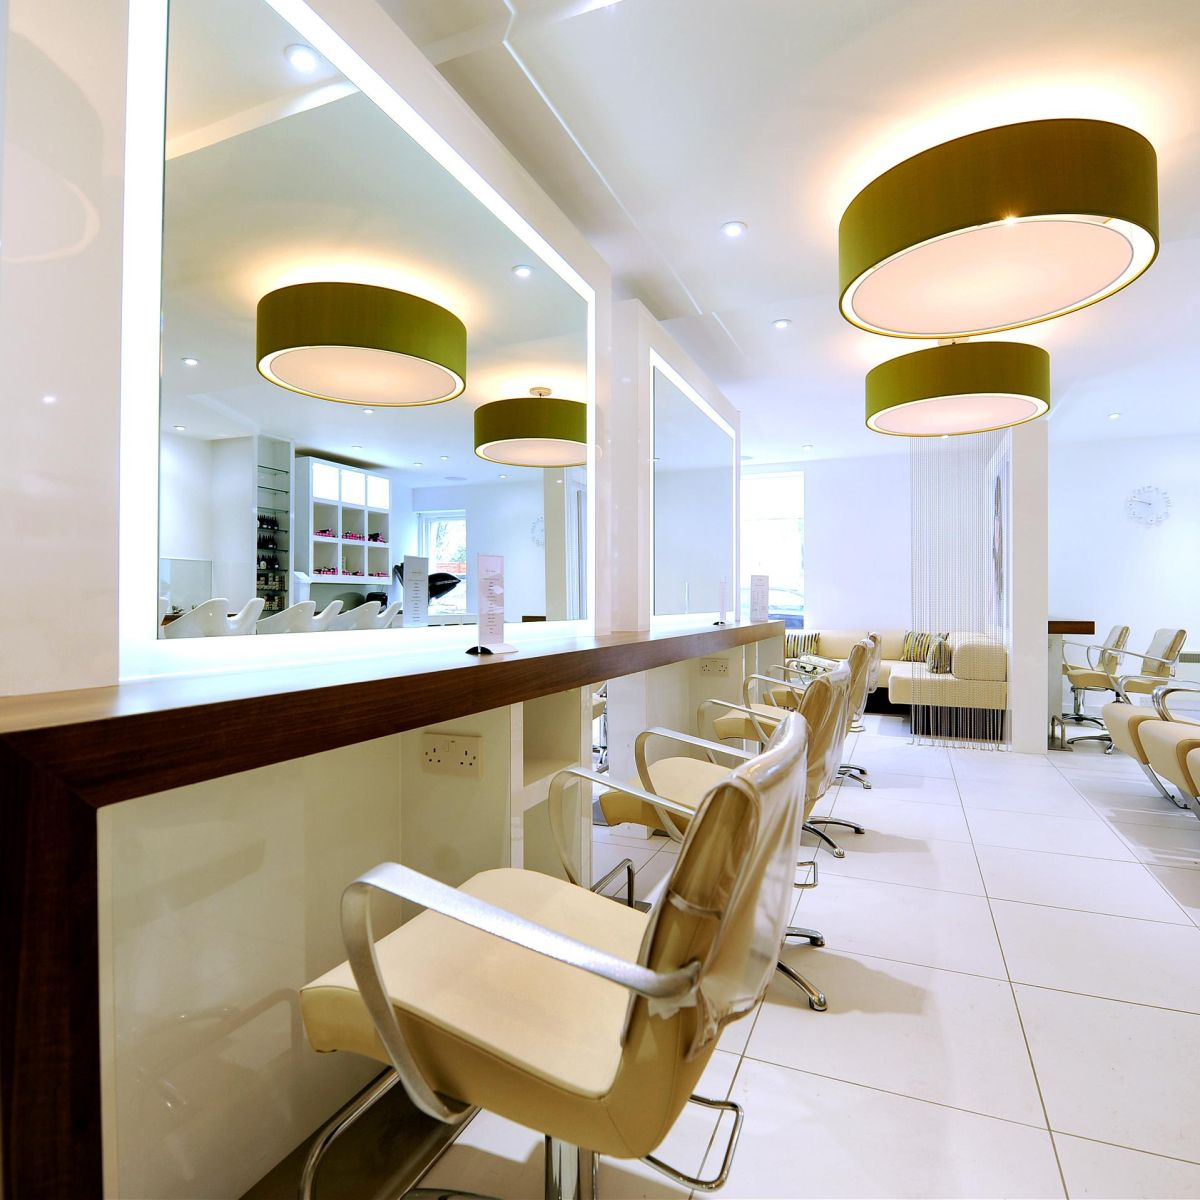 Hair salon interior design uk for Mobilier salon design